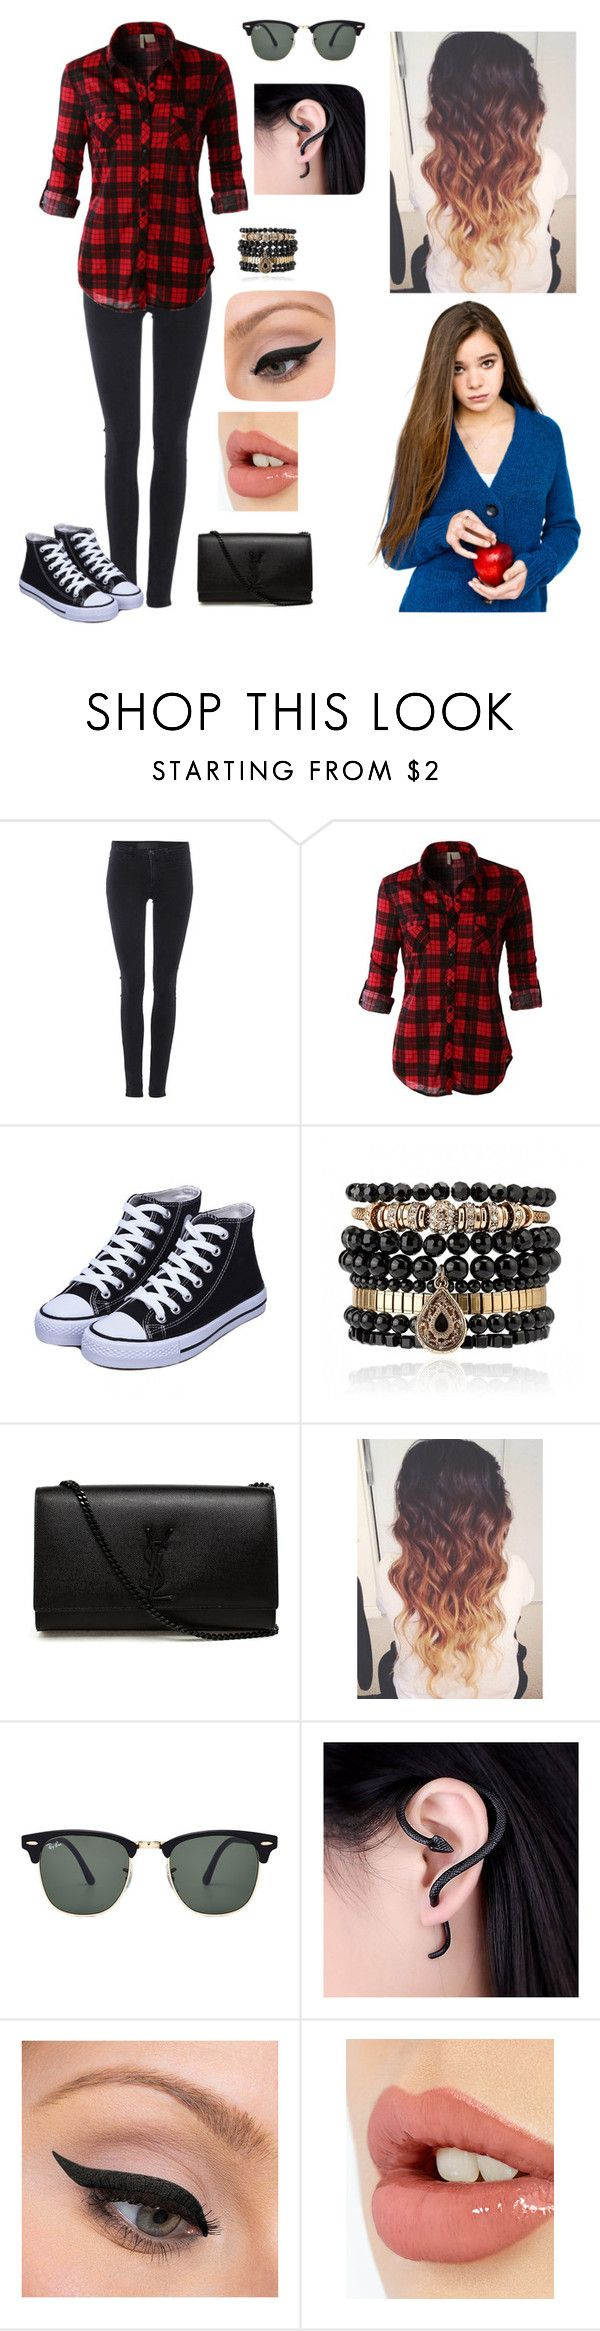 """Bianca White night - Vento Norte"" by lygia-soares ❤ liked on Polyvore featuring Samsøe & Samsøe, LE3NO, Samantha Wills, Yves Saint Laurent, Ray-Ban, LORAC, Charlotte Tilbury, women's clothing, women and female"